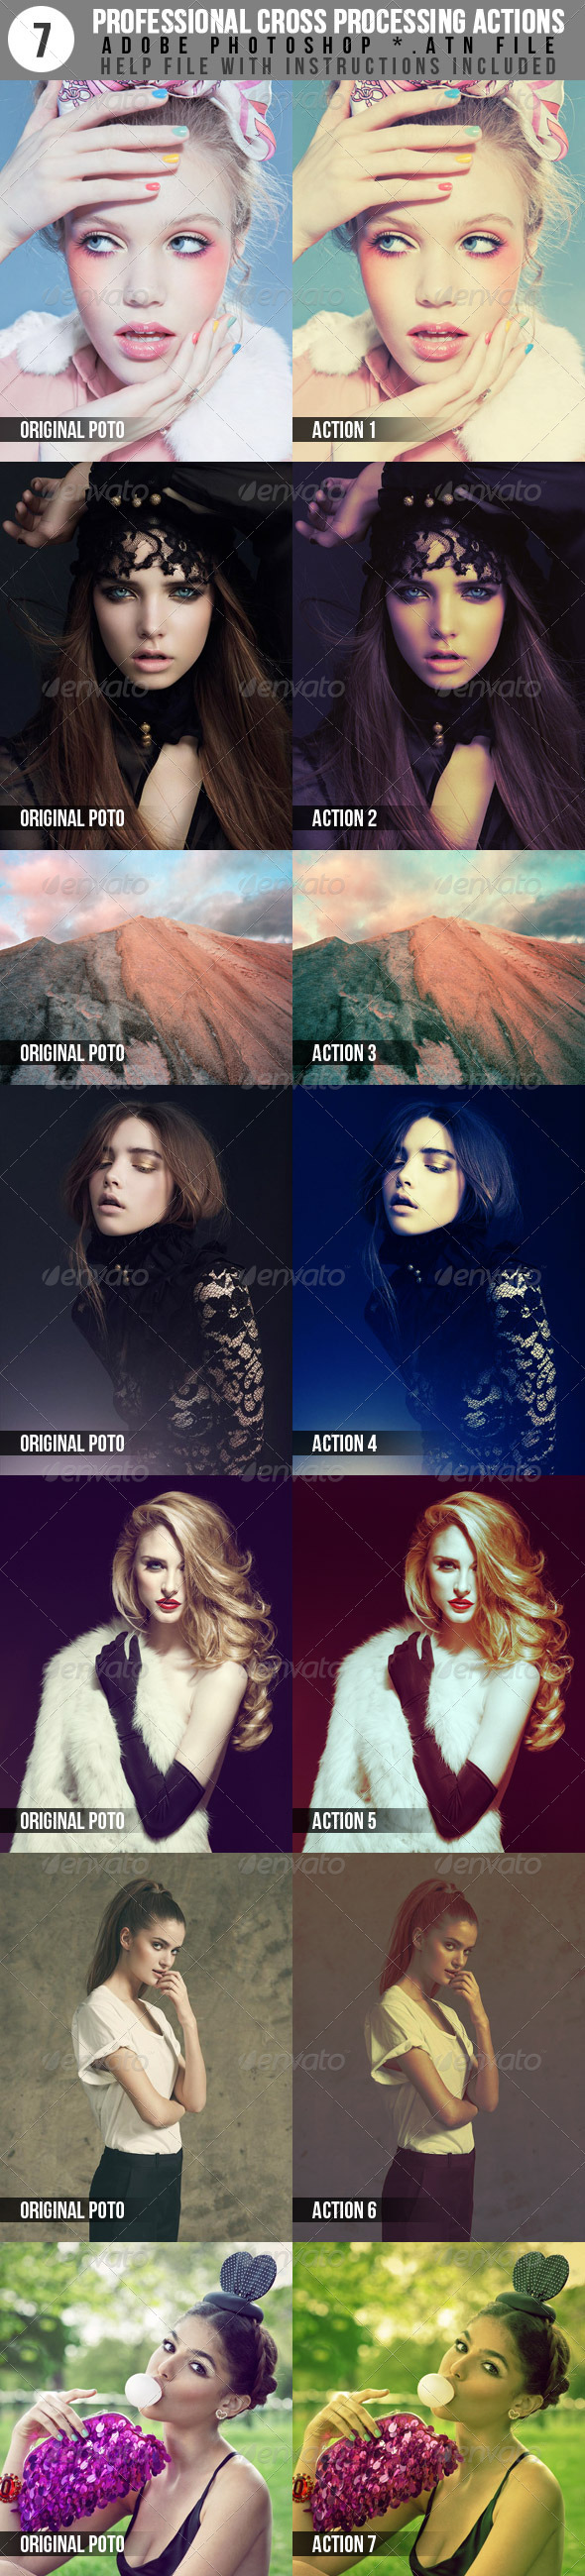 7 Professional Cross Processing Photo Actions - Photo Effects Actions